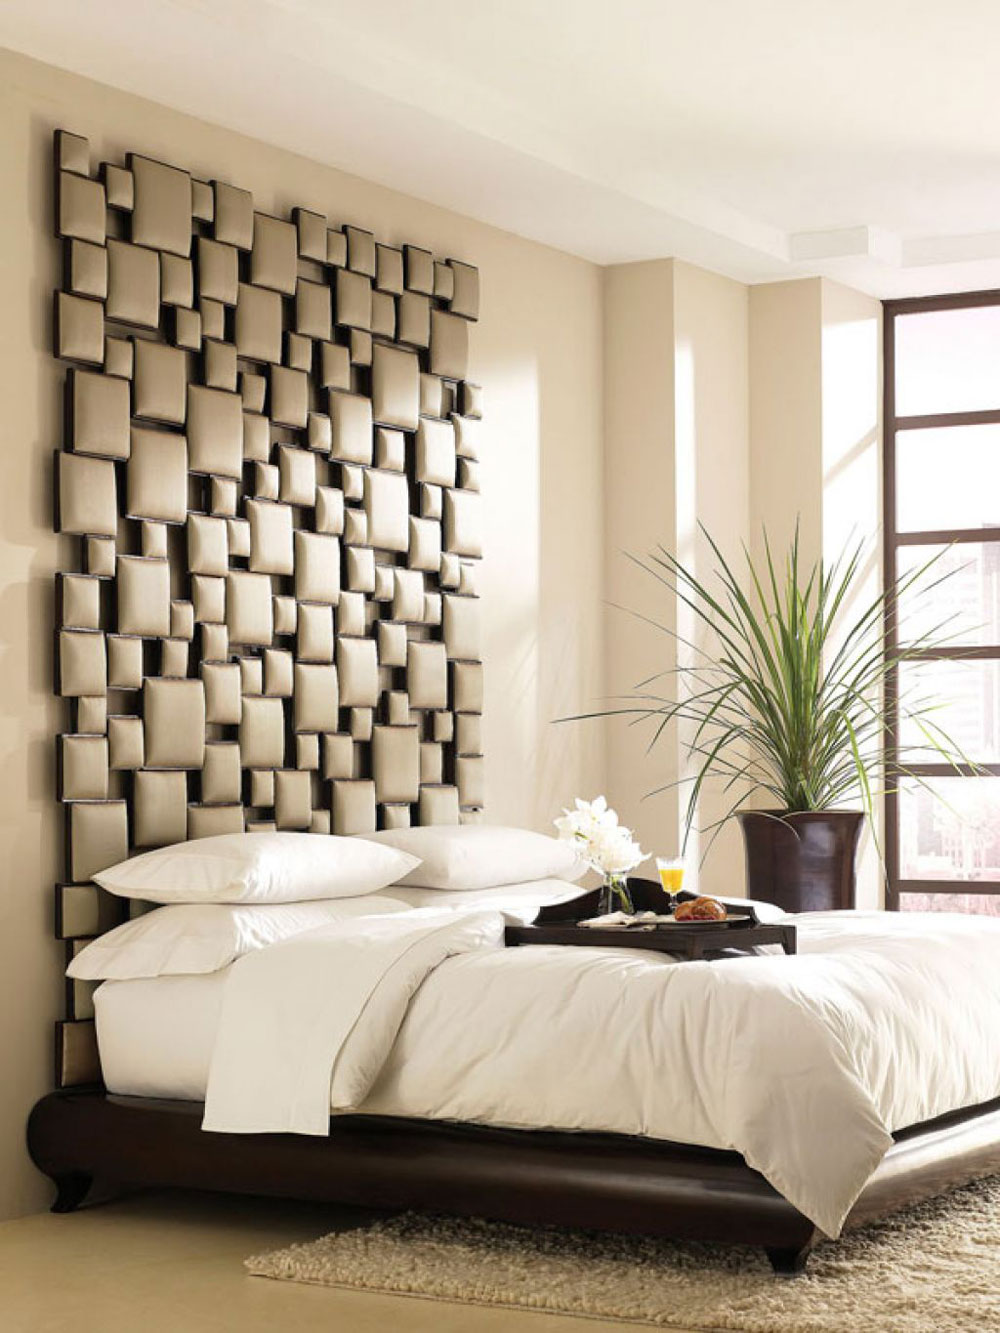 Headboard Decorating Ideas Part - 16: Fashionable-Bedrooms-With-This-Headboard-Decorating-Ideas-10 Fashionable